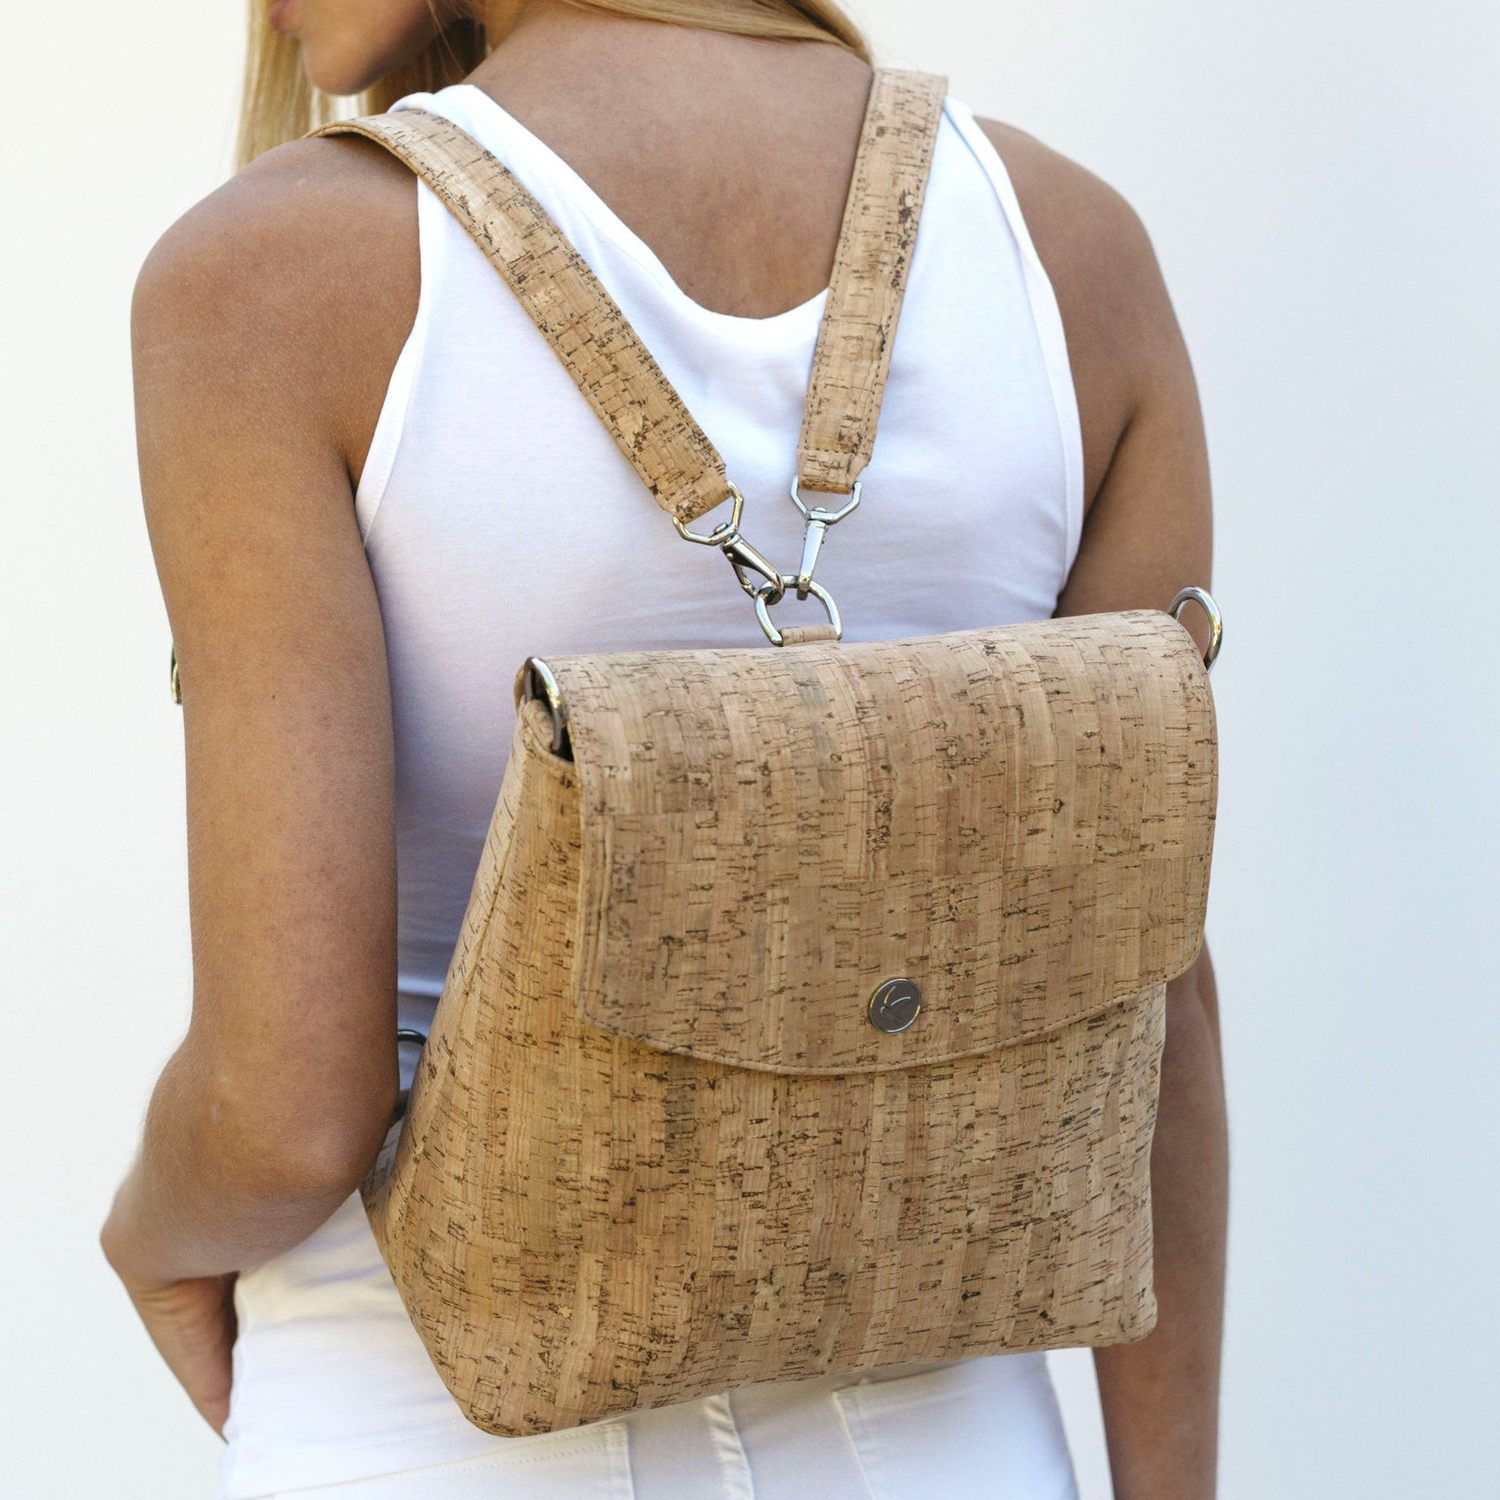 made trade - Svala Gemma Backpack Purse in Natural Cork / $295Sustainable. Vegan. USA Made. Women Owned. Made out of all natural, biodegradable cork - which is only the next big textile. Enjoy!